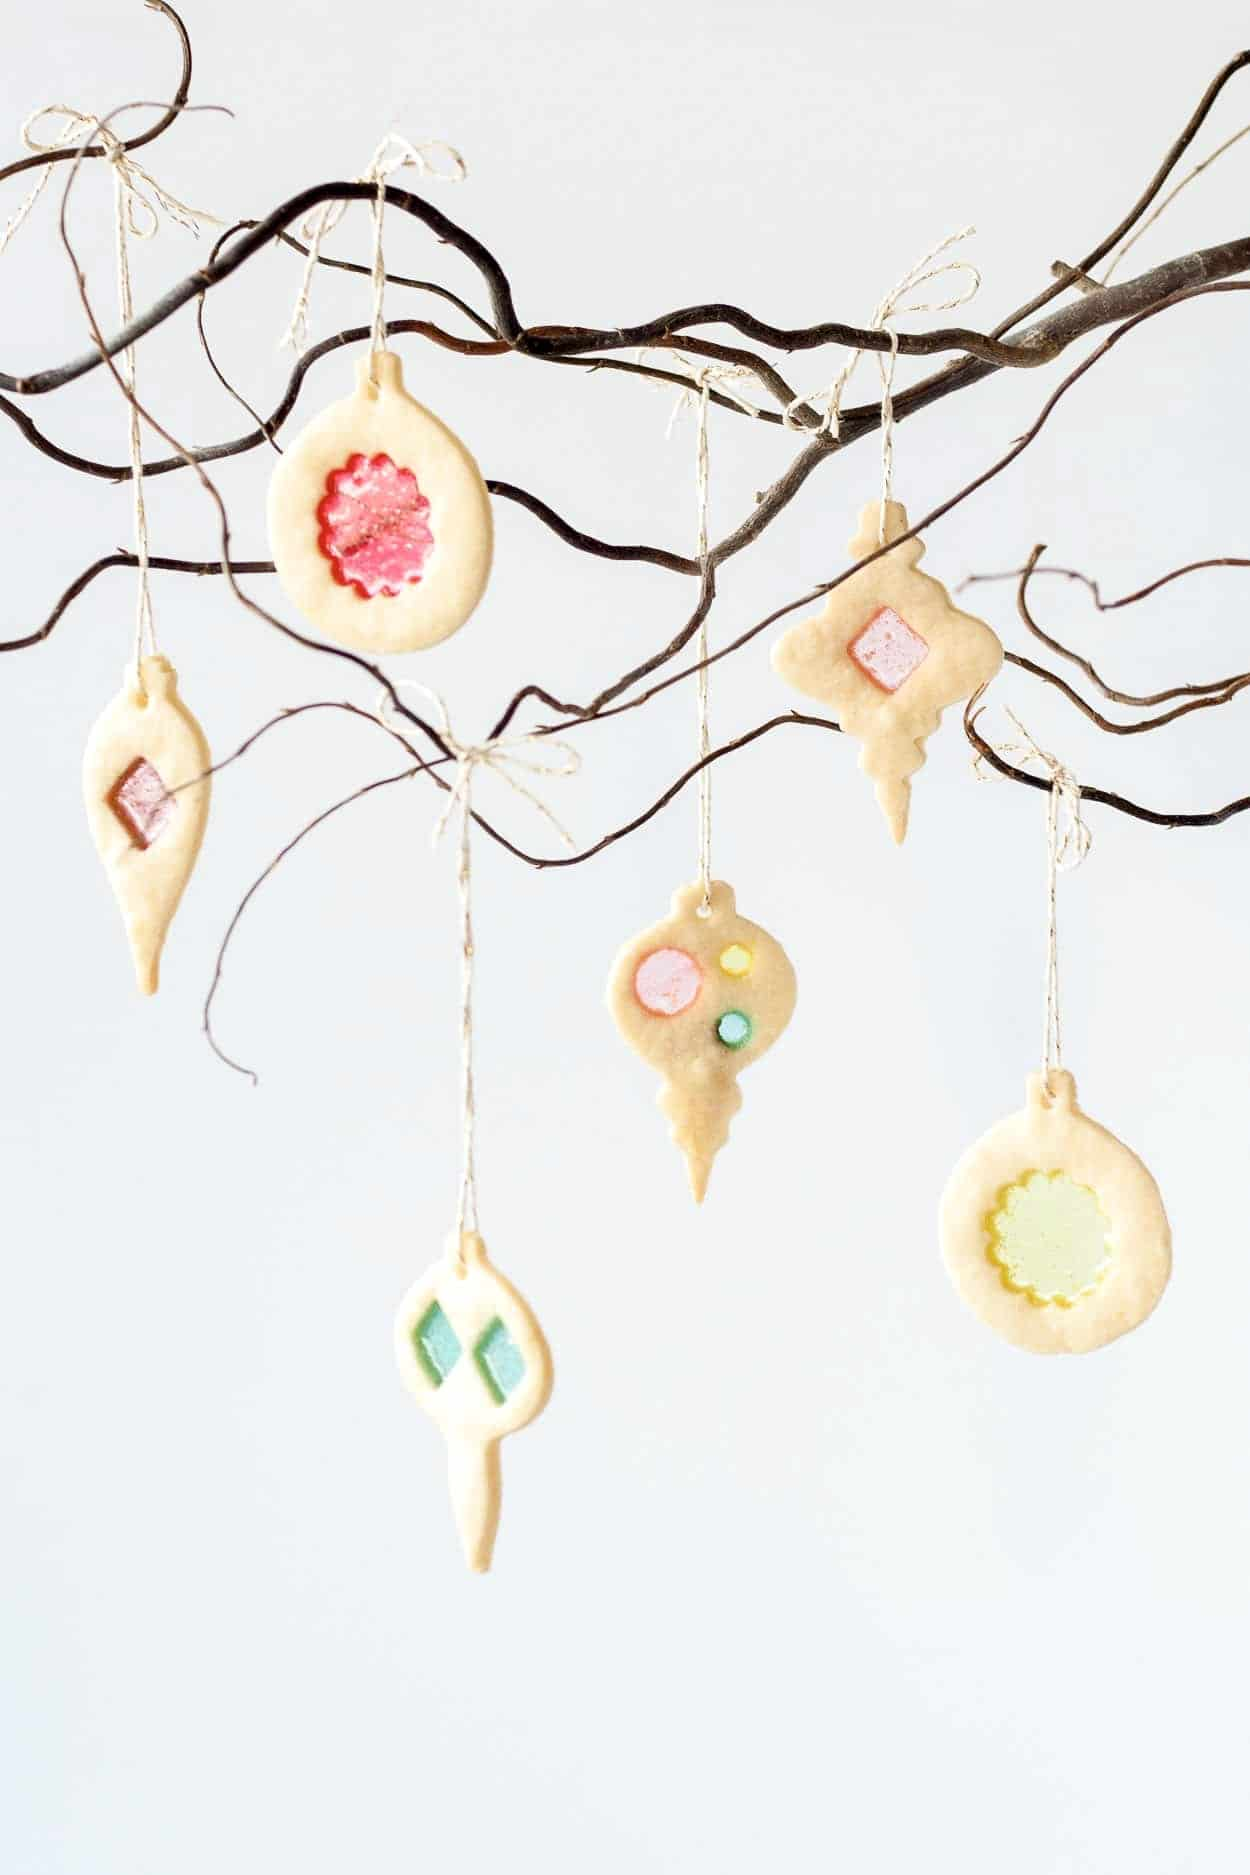 Stained glass cookie ornaments hanging from a tree branch.